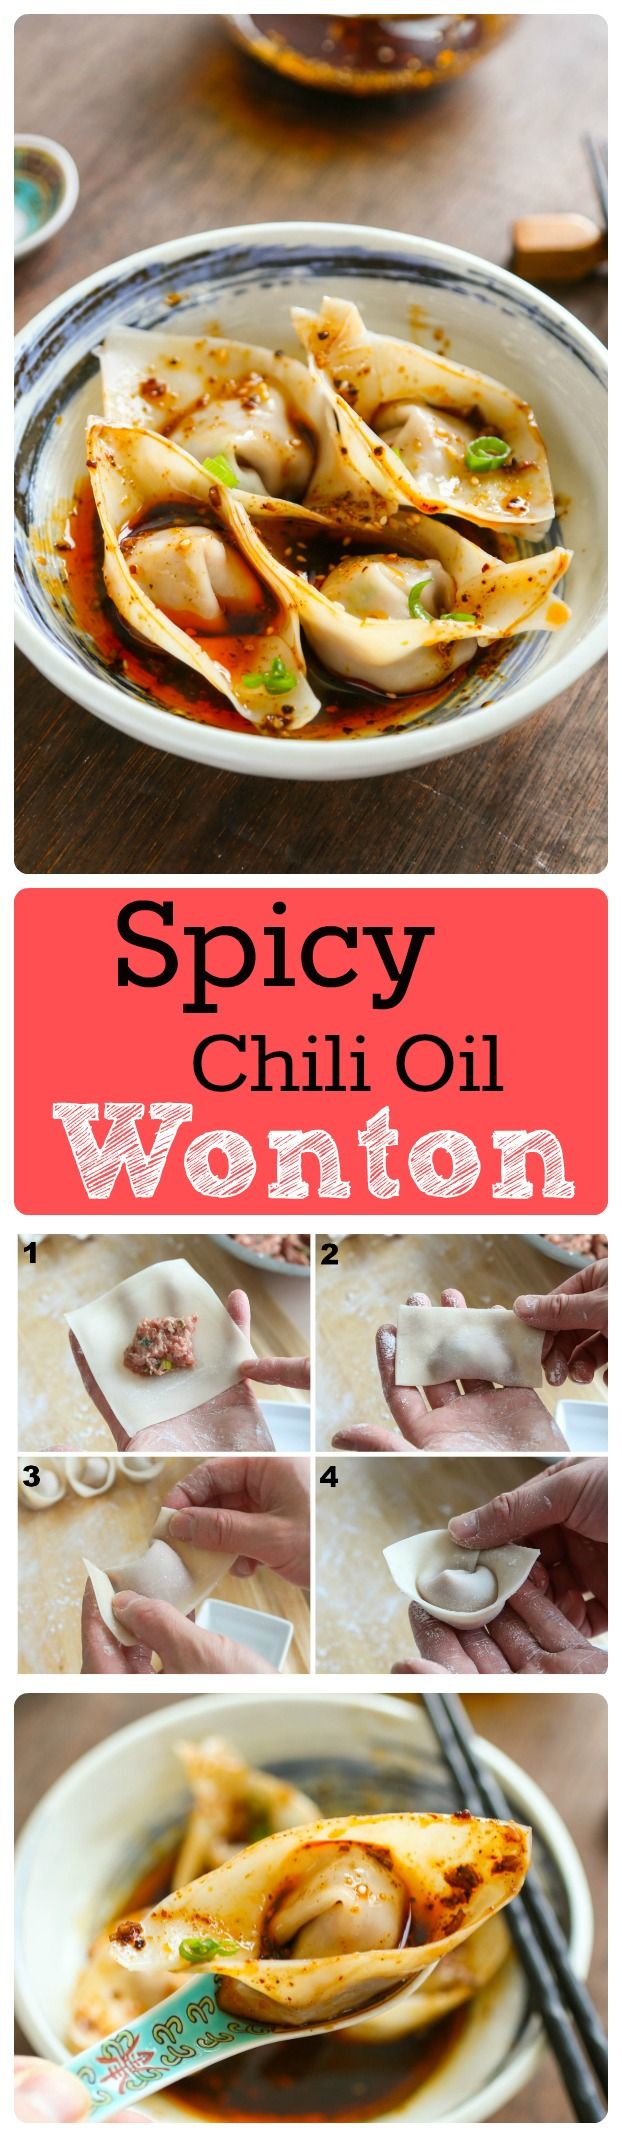 Sichuan Style Wontons in Spicy Chili Oil recipe 紅油抄手